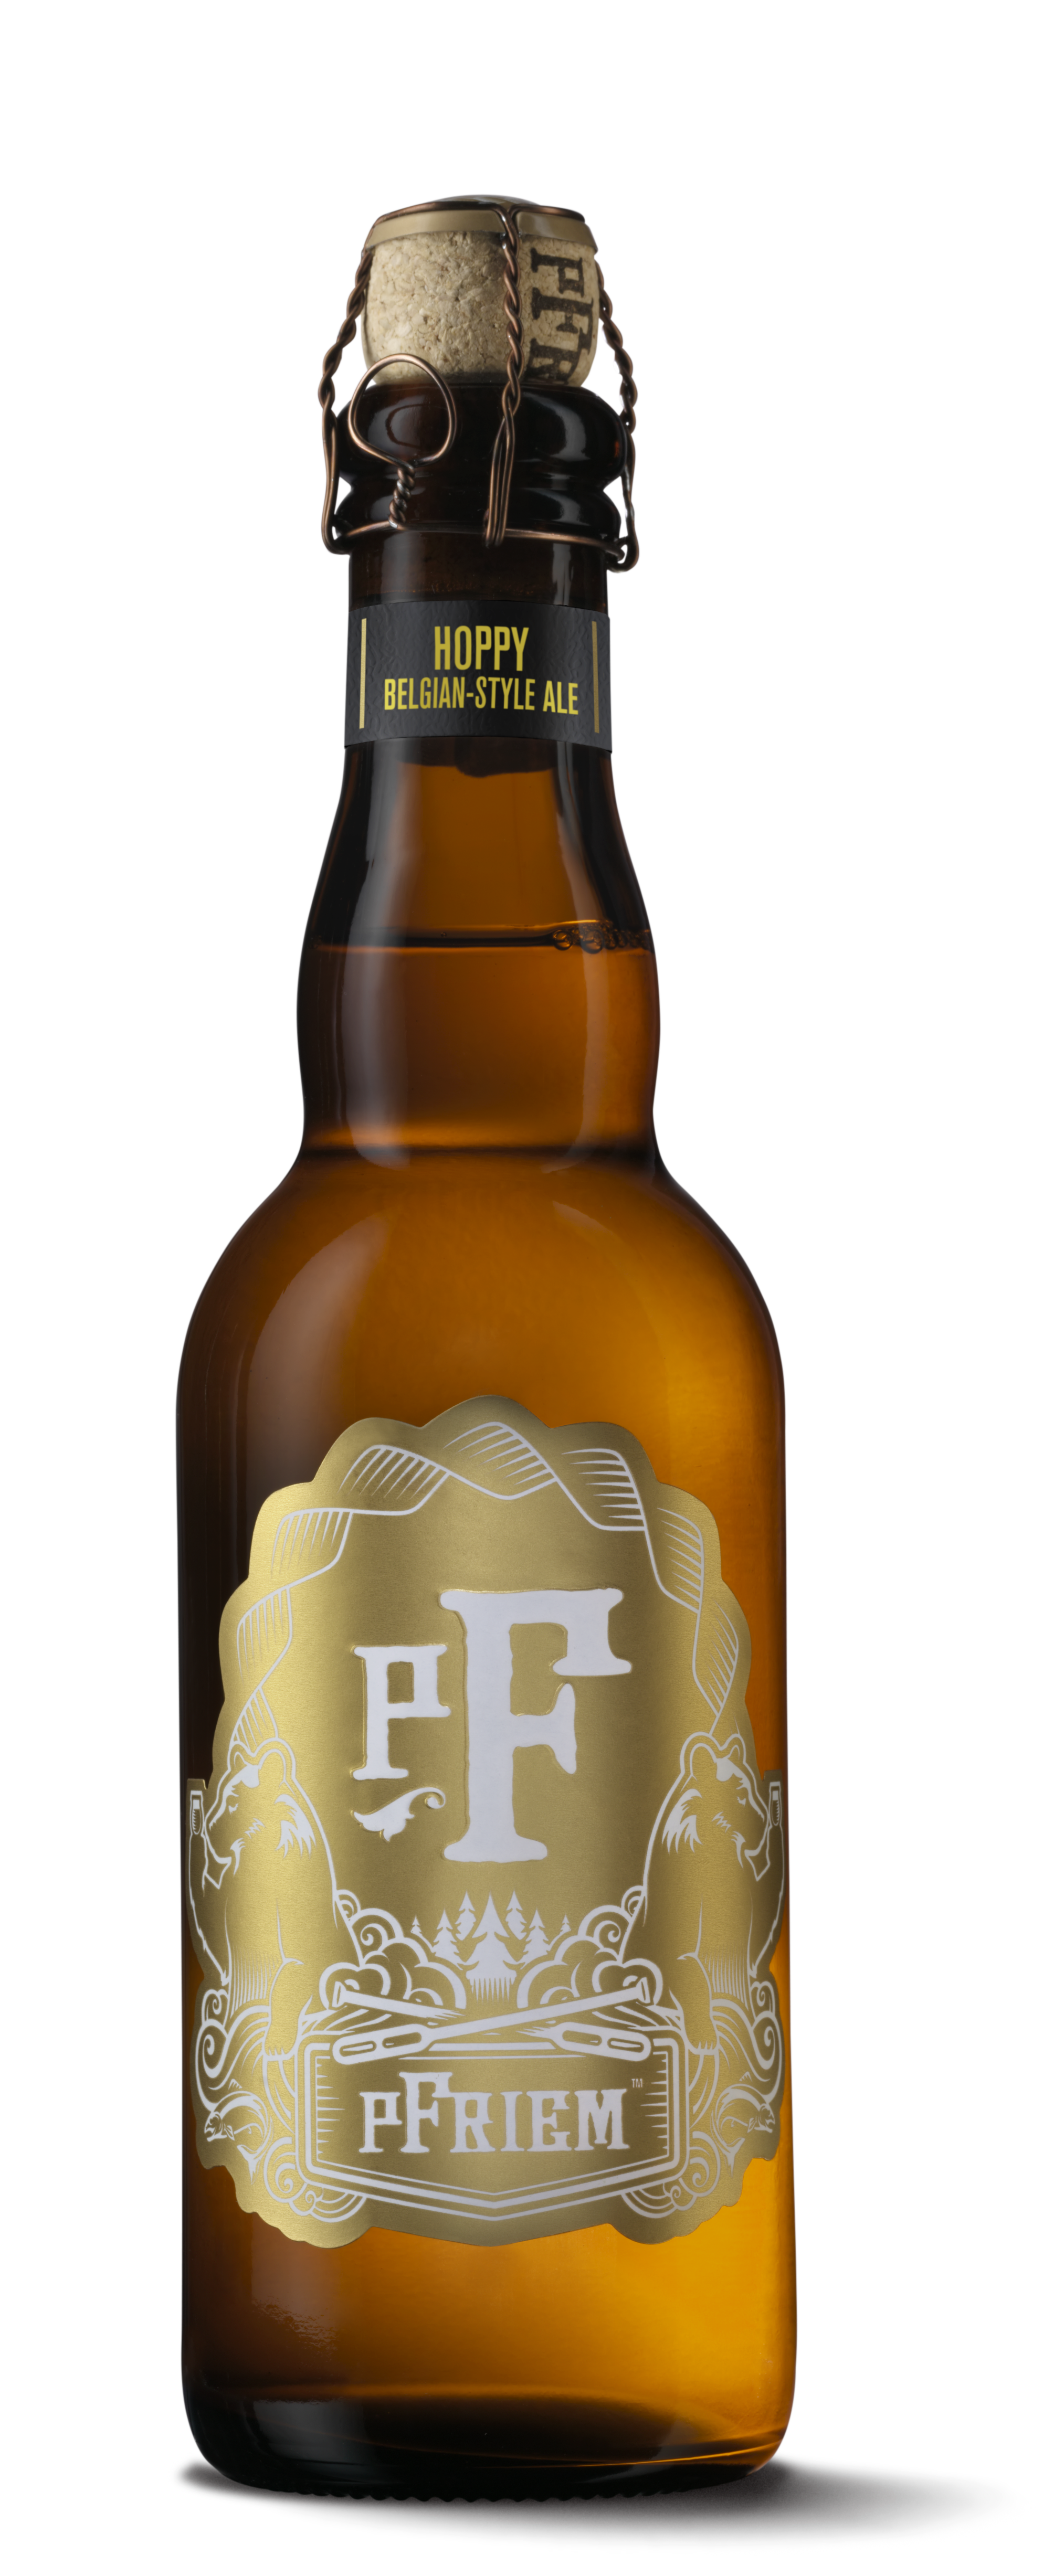 image courtesy pFriem Family Brewers